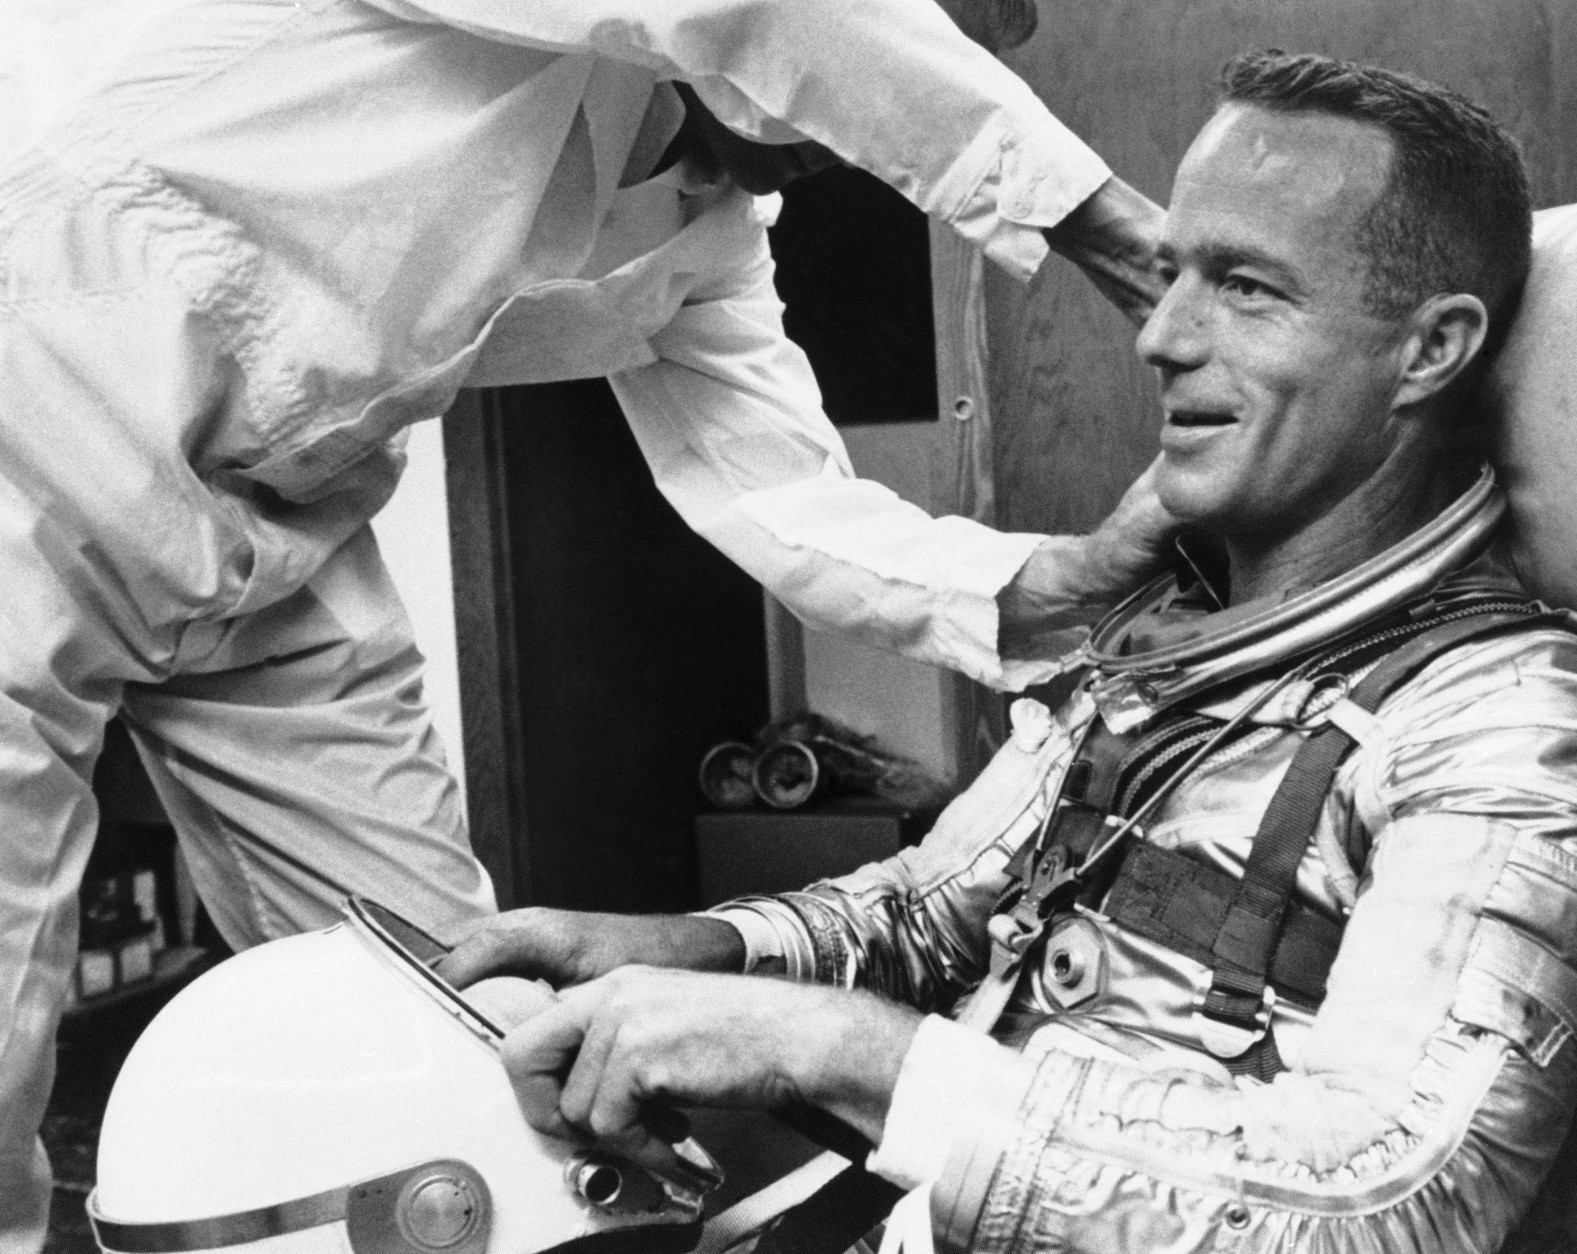 Astronaut Scott Carpenter gets a final going over from a suit technician as he prepares for orbital flight at Cape Canaveral, Florida, May 24, 1962. (AP Photo)